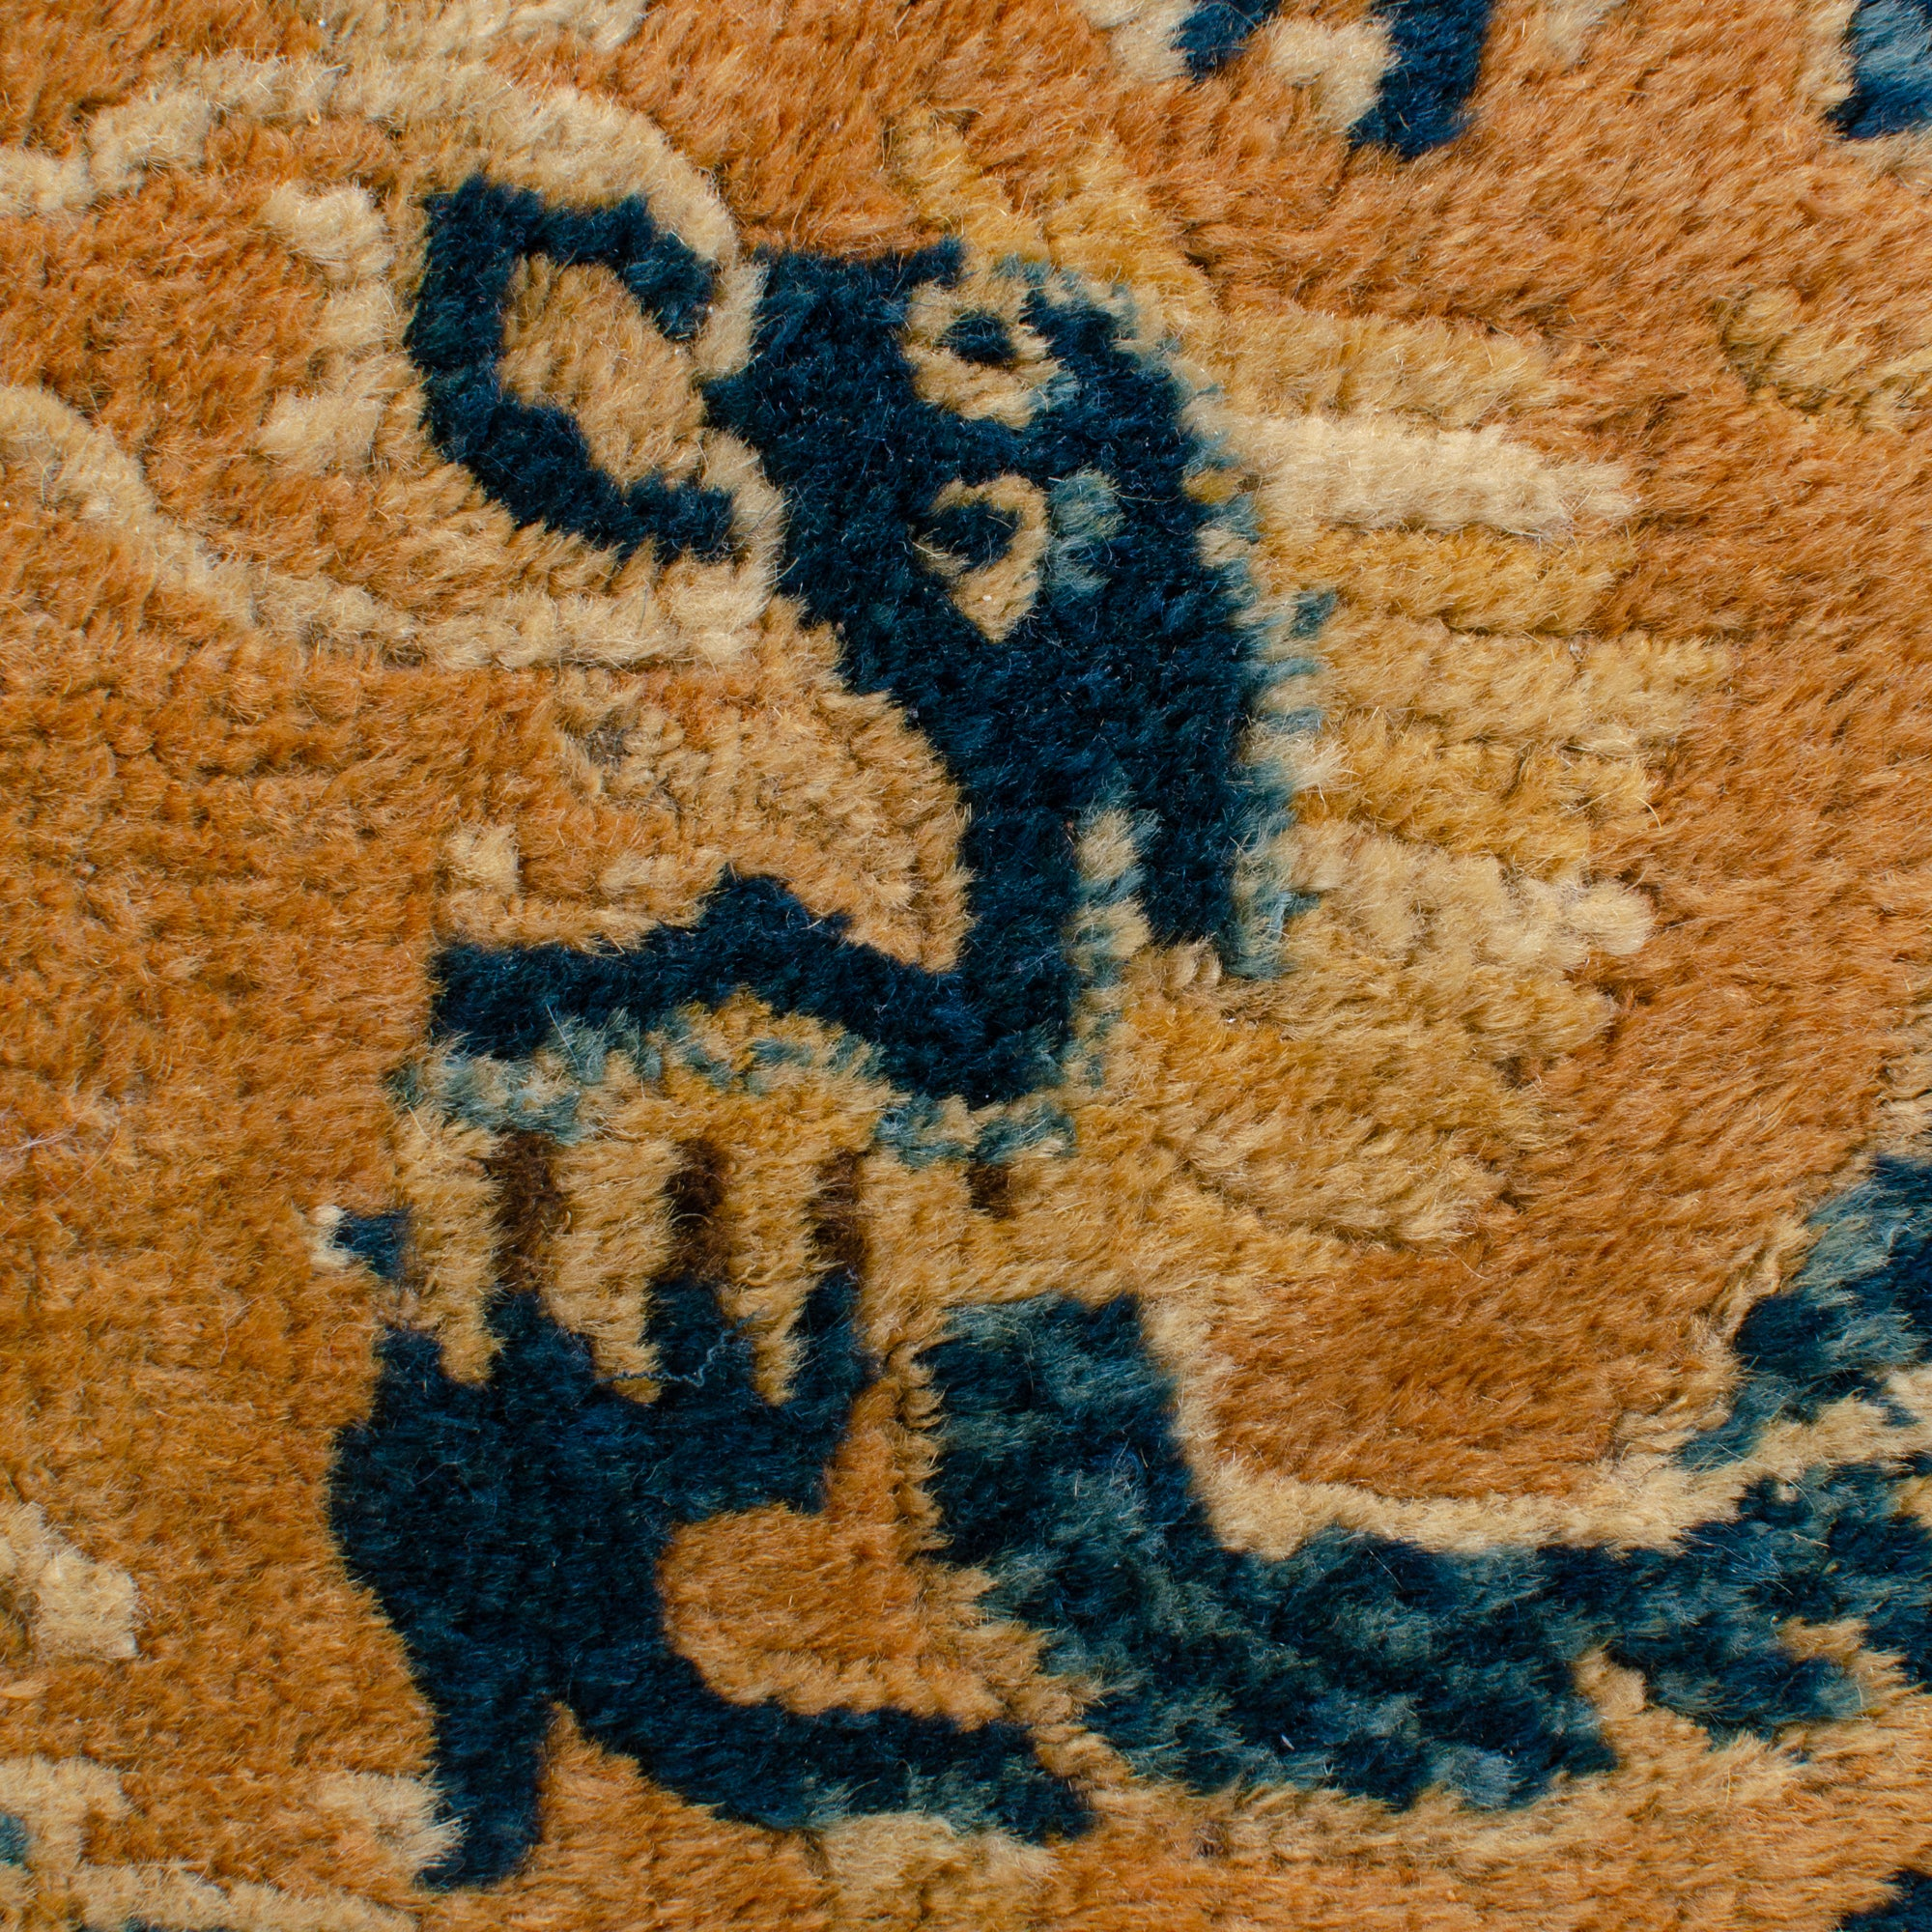 Chinese Ningxia Chair Seat Rug, c.1830